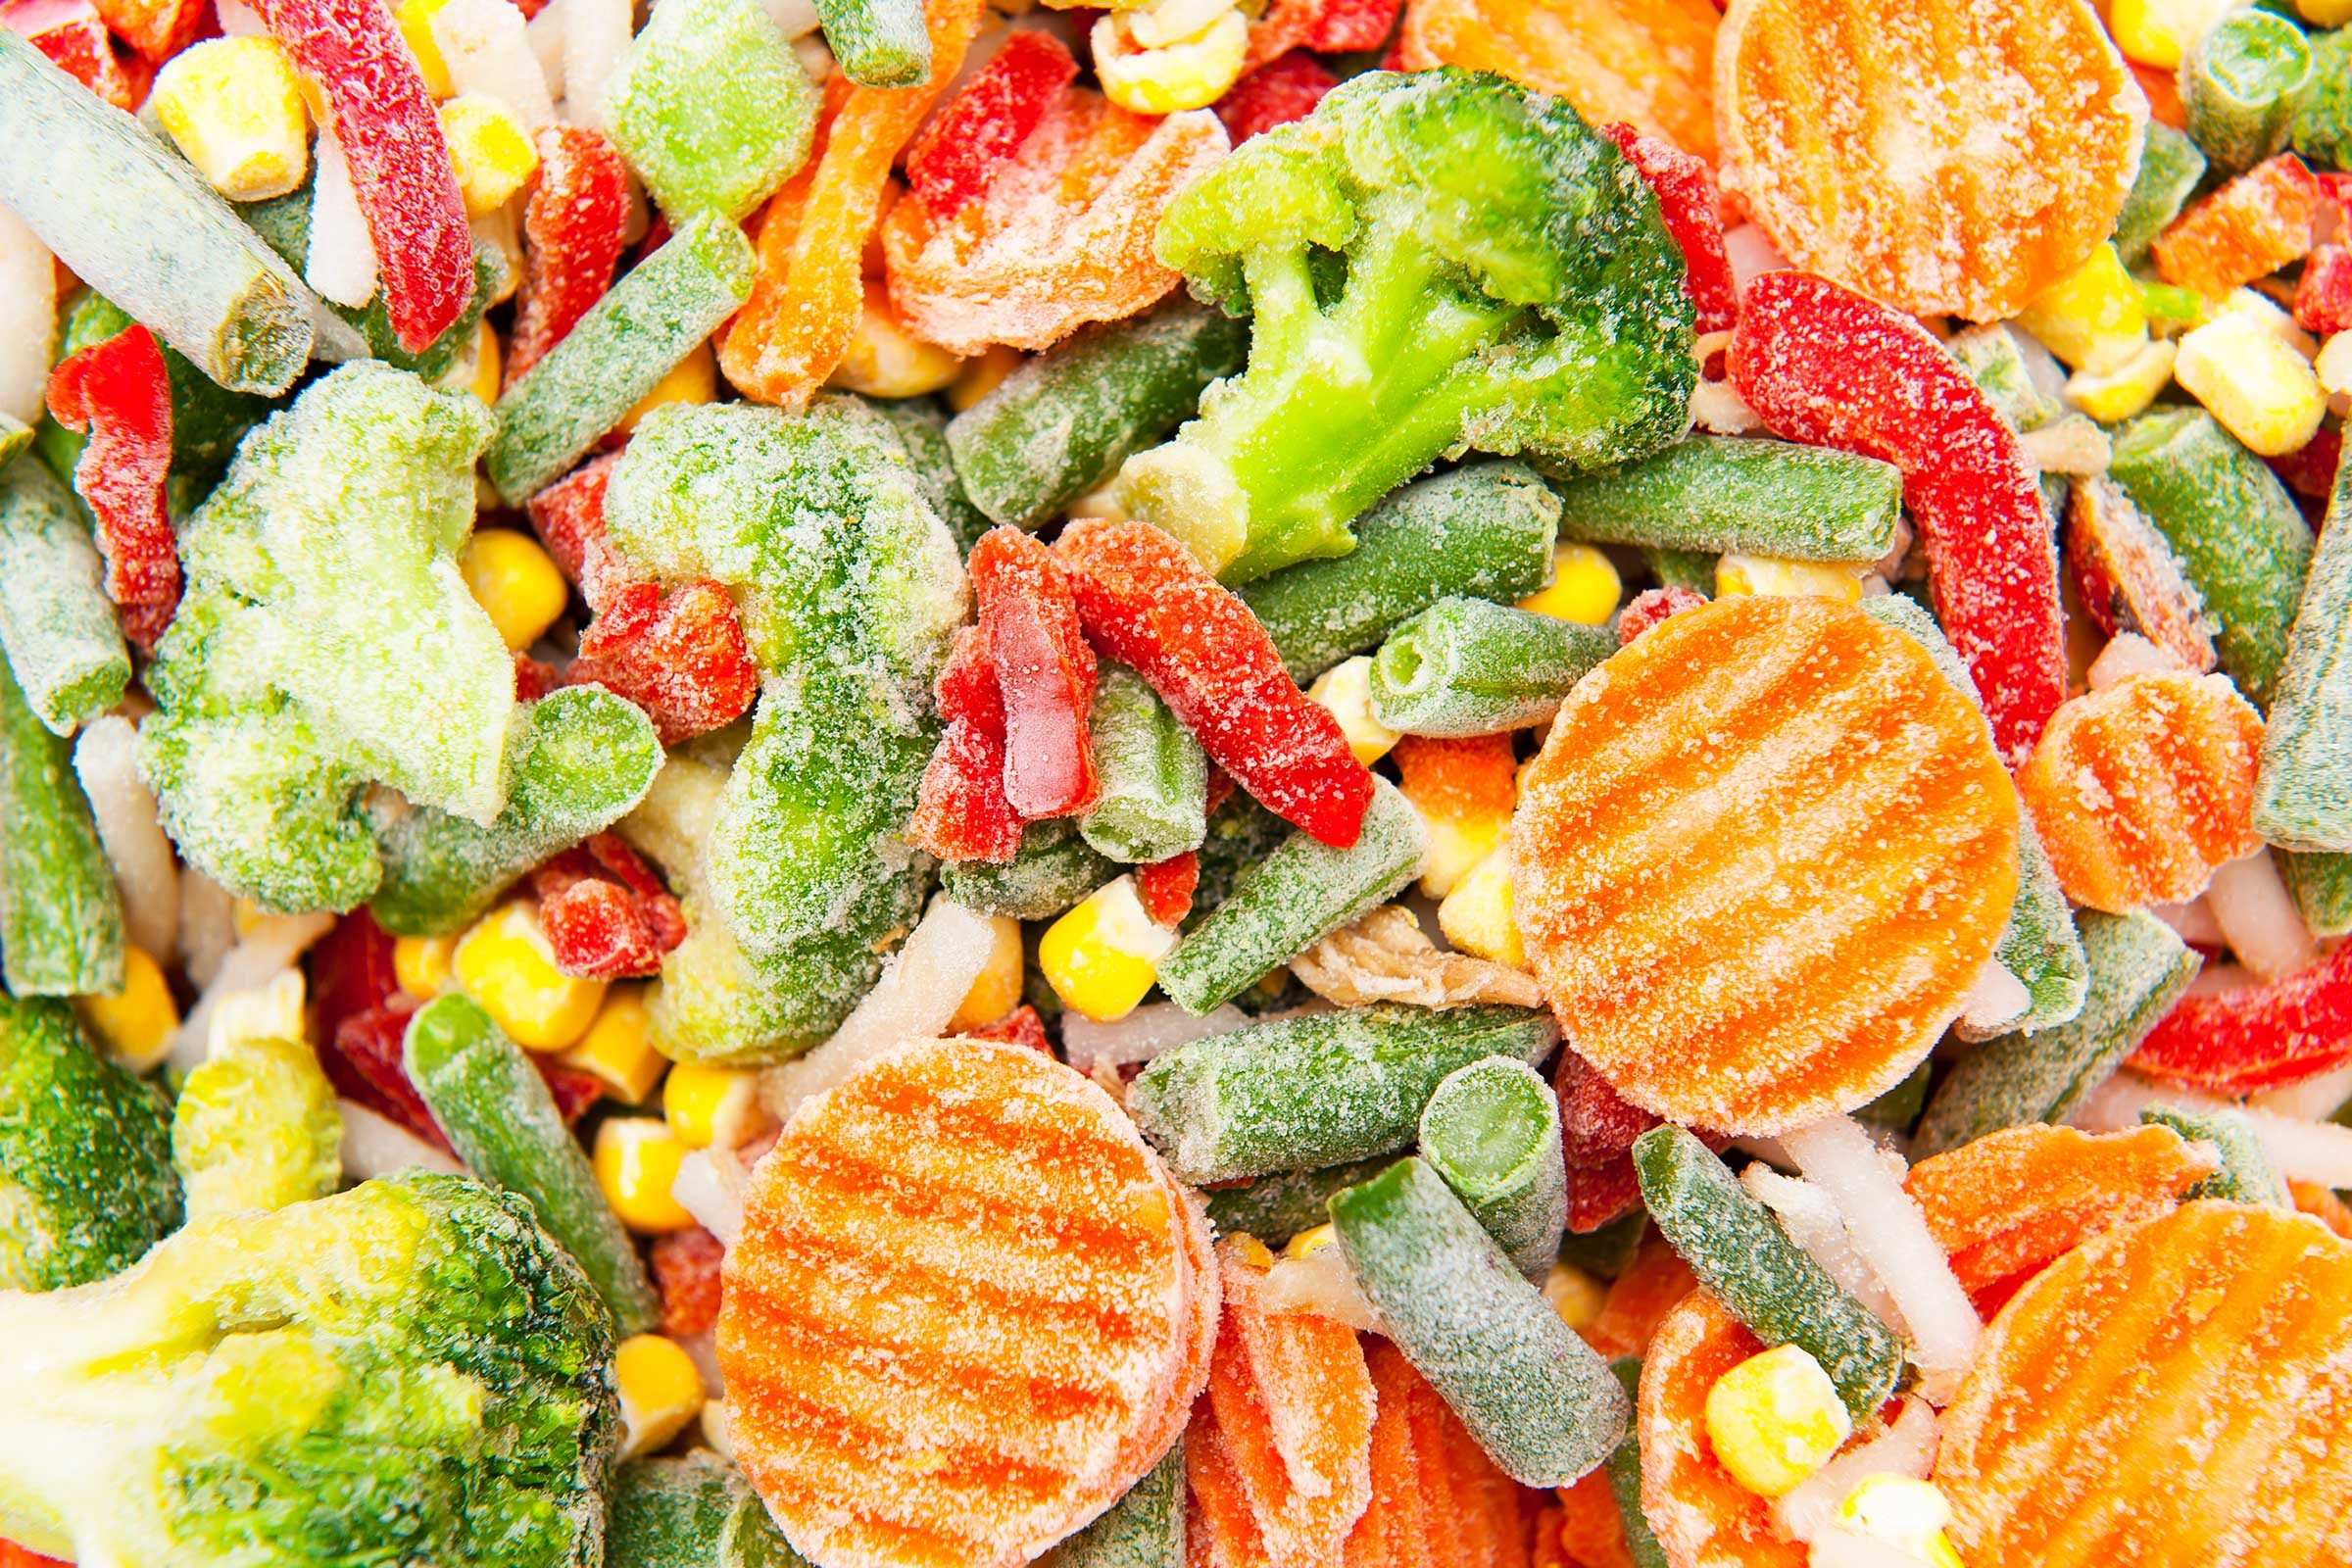 Avoid pre-chopped fruits and vegetables